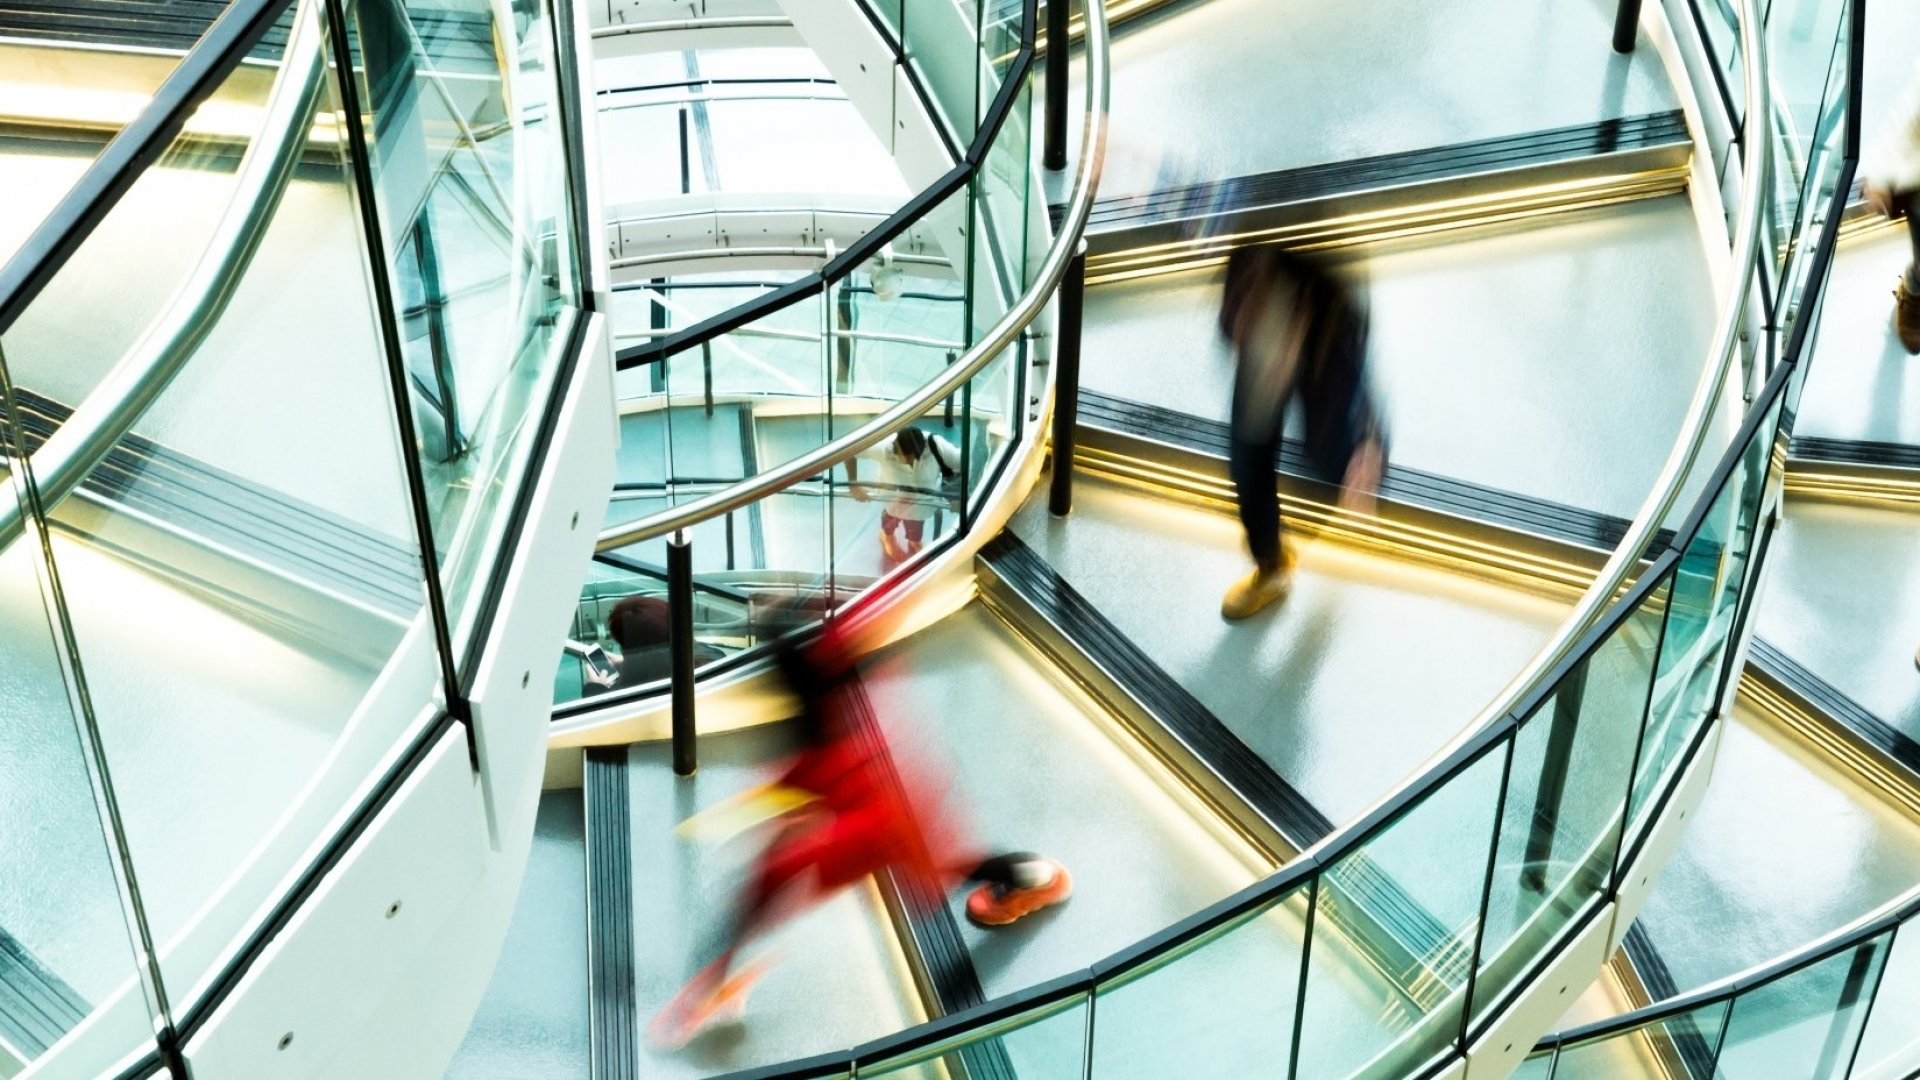 The Top 6 Priorities for Building High-Performance Organizations of Tomorrow